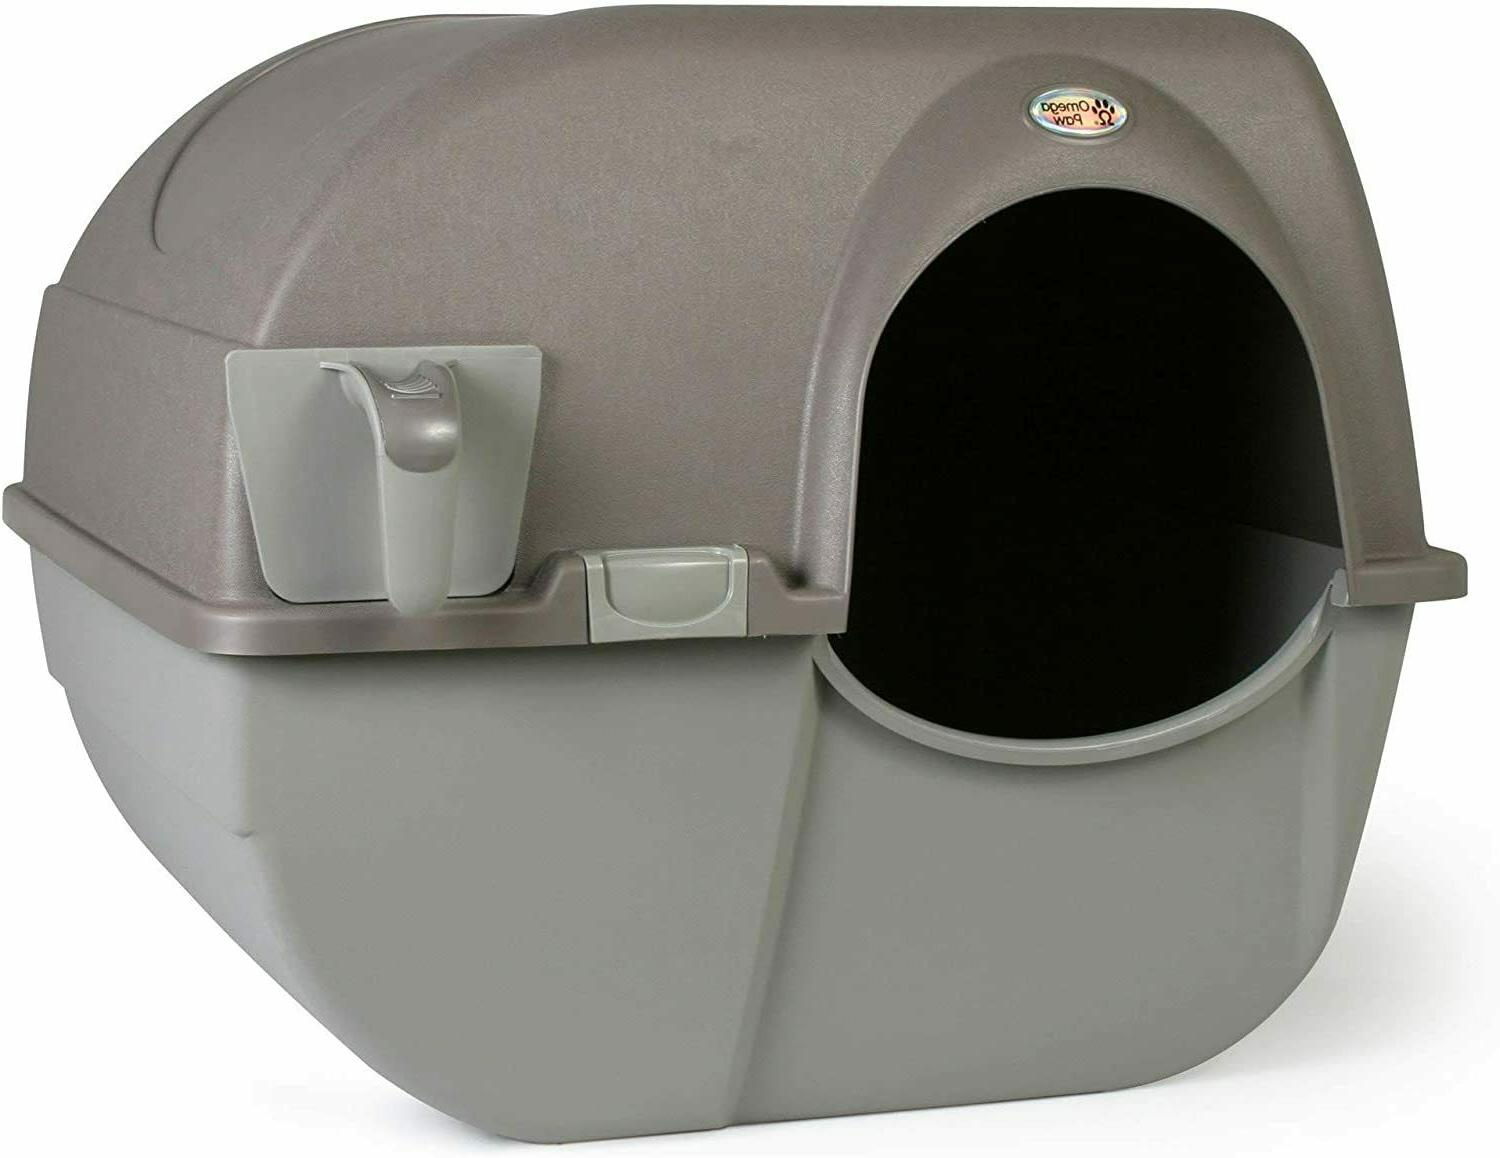 sale off self cleaning litter box large